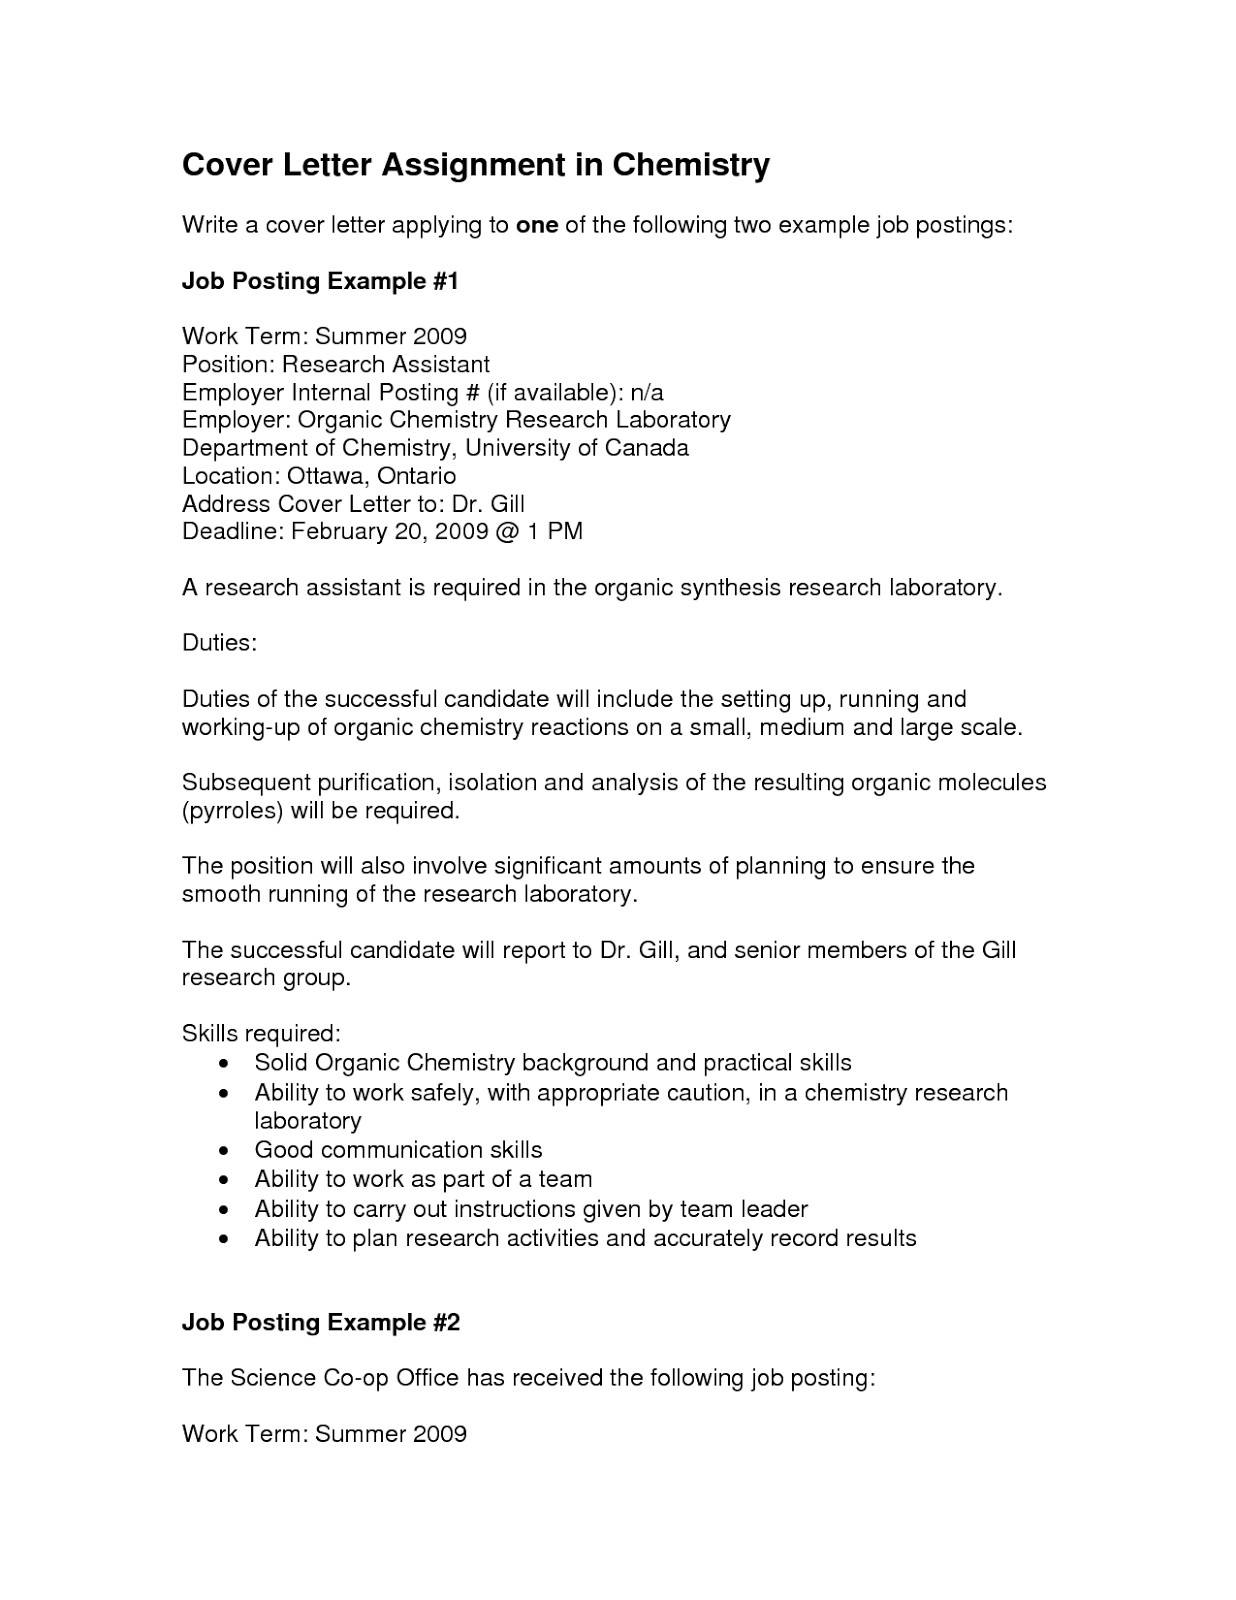 Sample Cover Letter for Internal Position Template - Resume for Promotion Template Office assistant Resume Sample